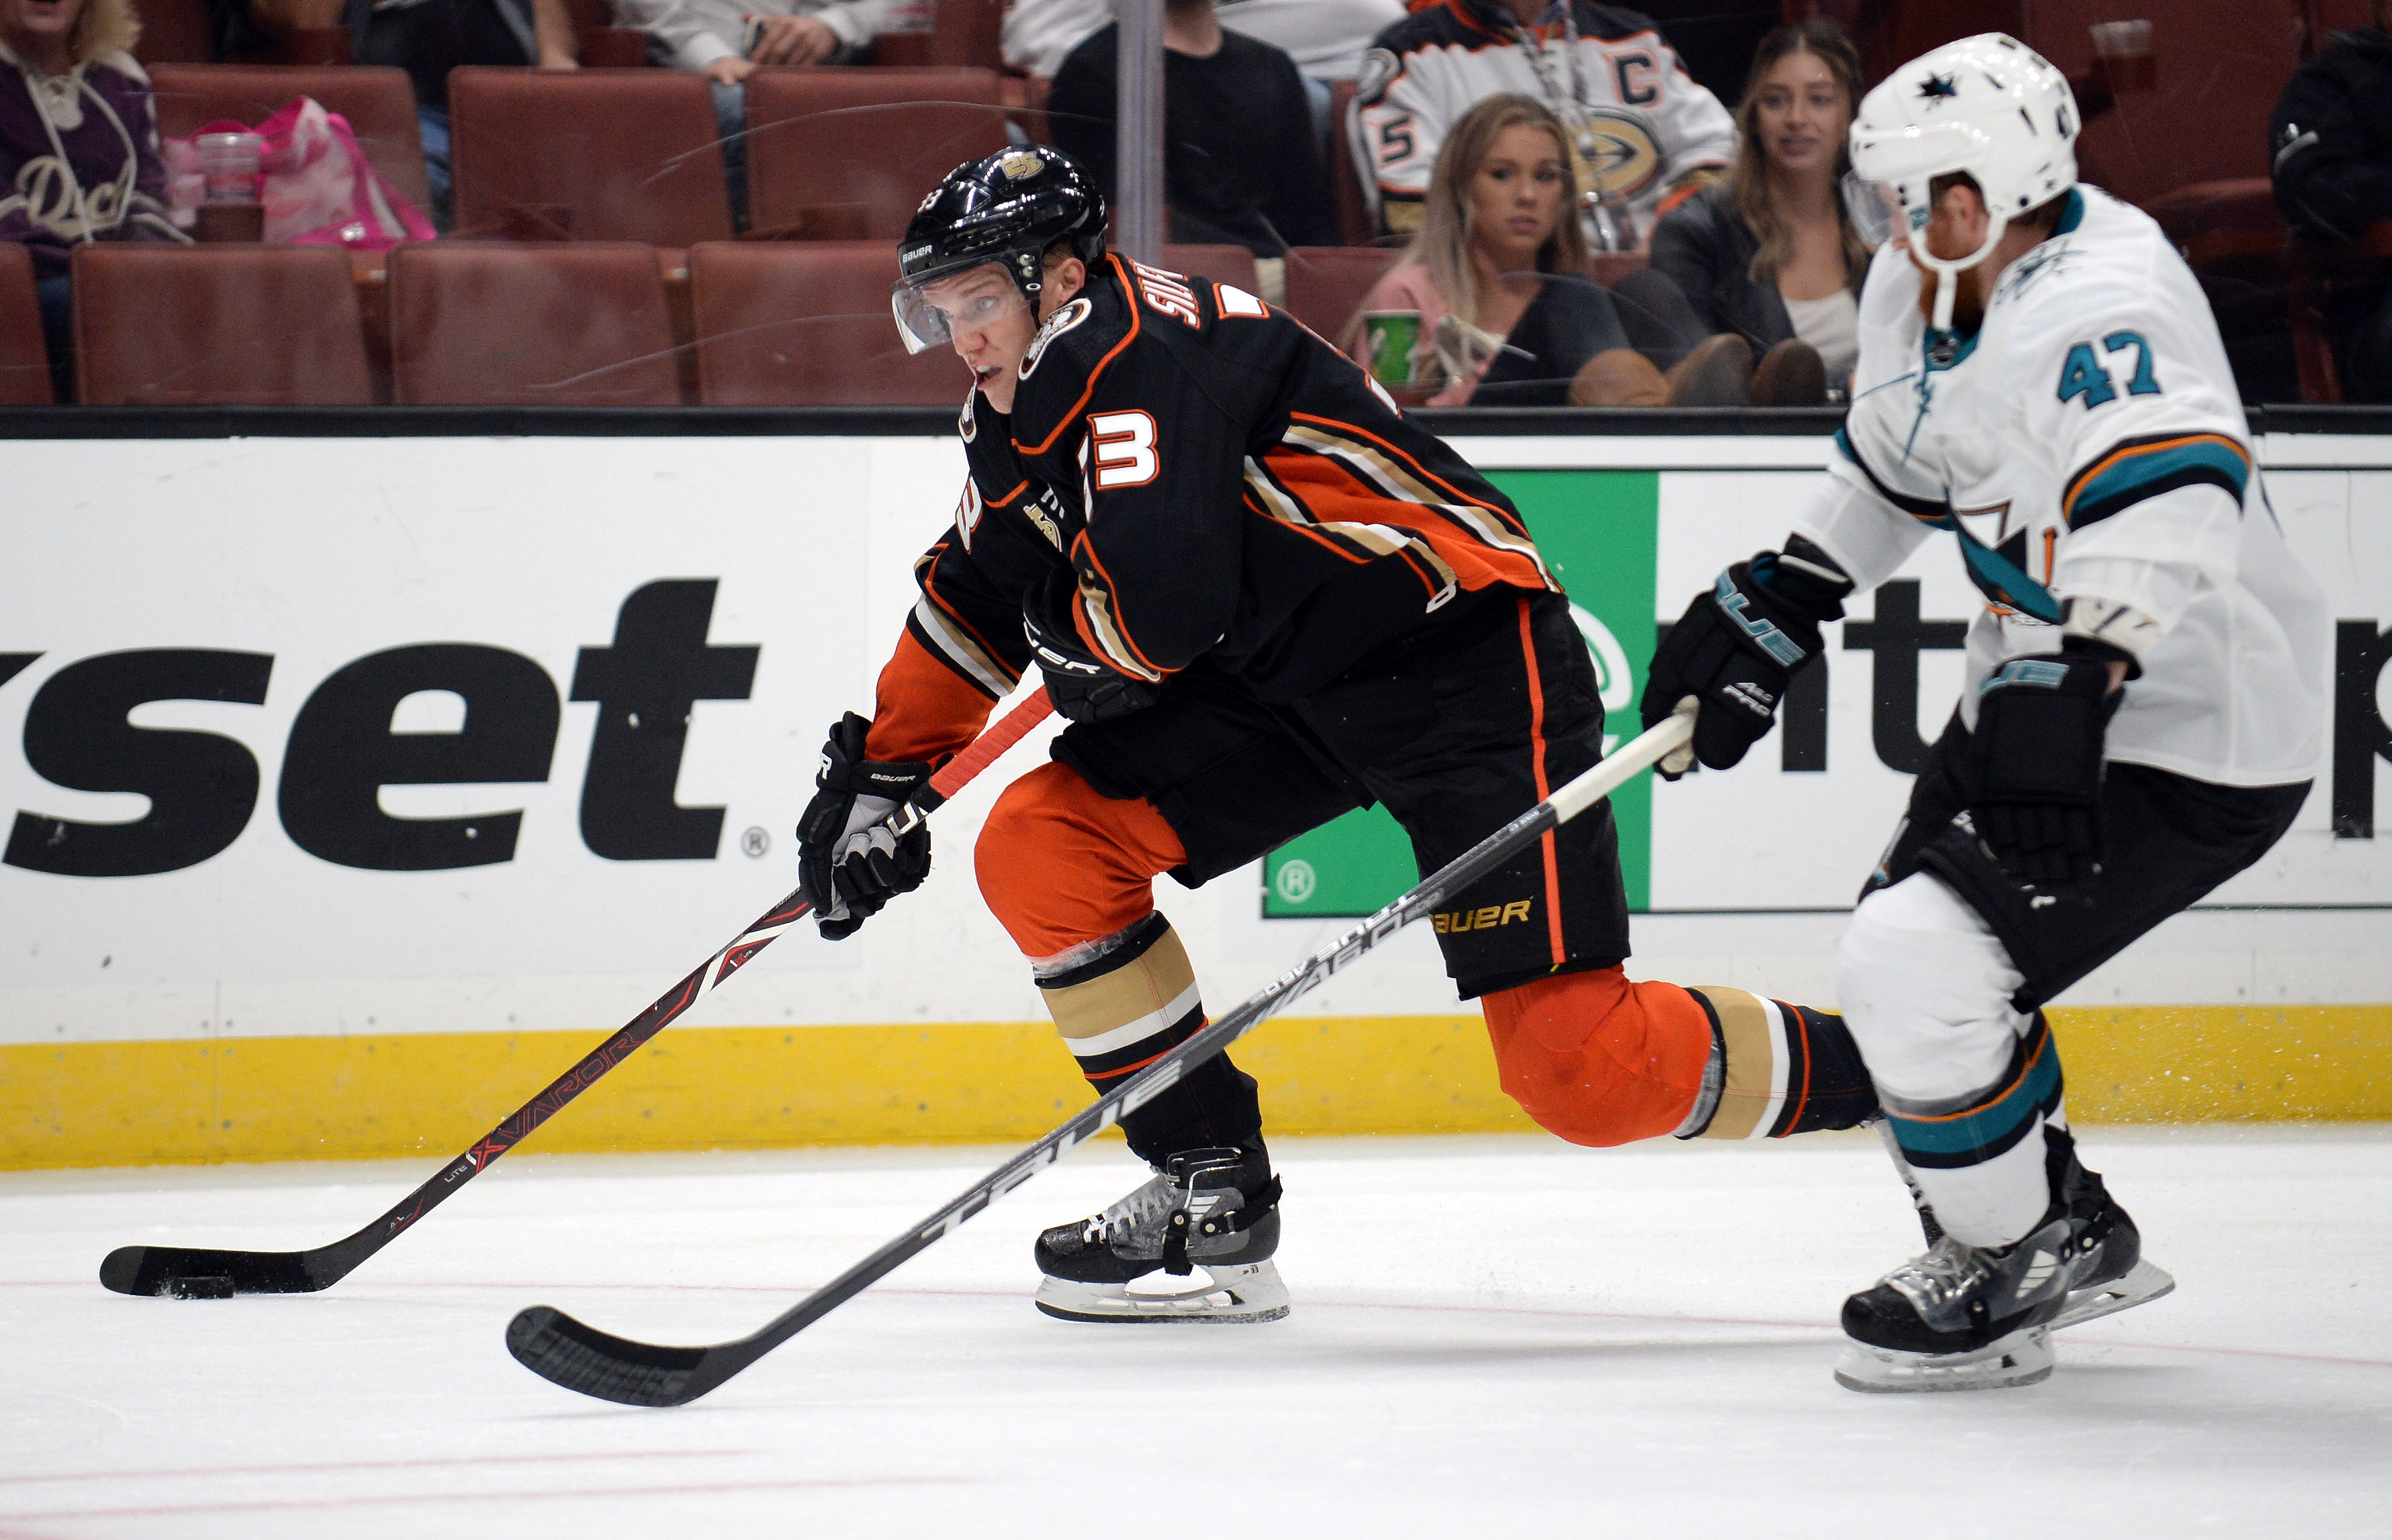 September 20, 2018; Anaheim, CA, USA; Anaheim Ducks right wing Jakob Silfverberg (33) moves the puck against San Jose Sharks left wing Francis Perron (47) during the third period at Honda Center. Mandatory Credit: Gary A. Vasquez